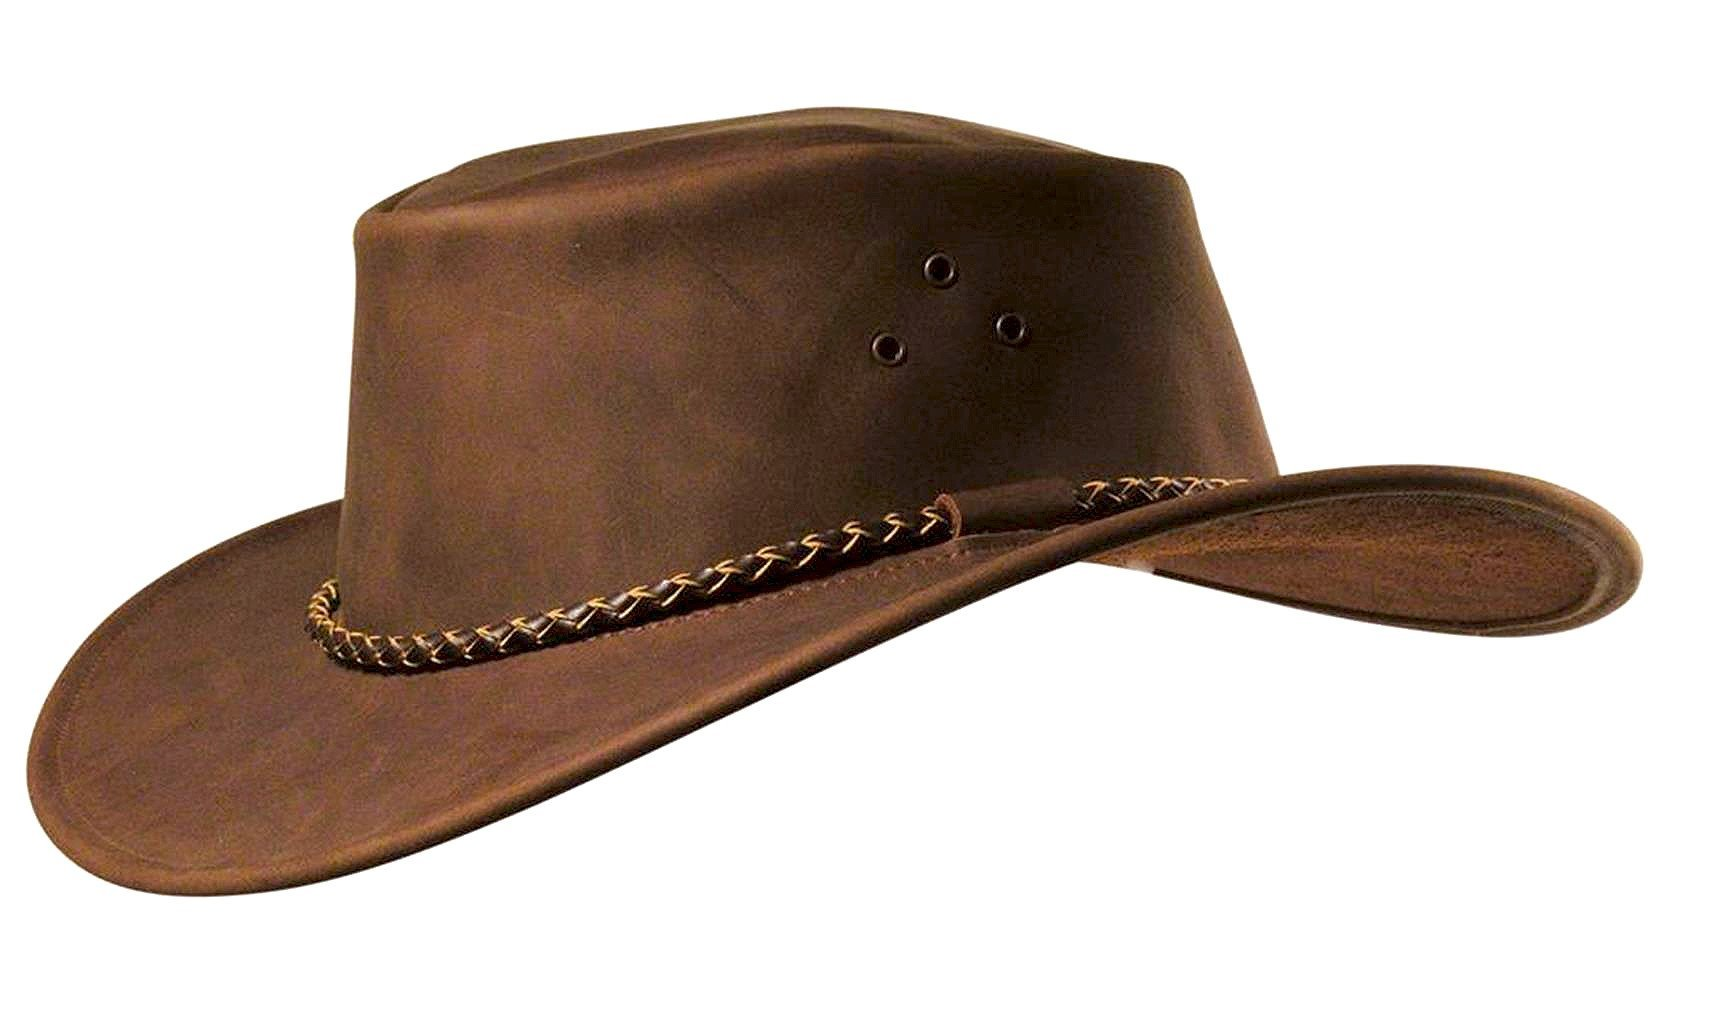 Australia Style Outdoor | Leather Hat Packer soft leather with round cord - OUT OF AUSTRALIA | Kakadu Traders Australia